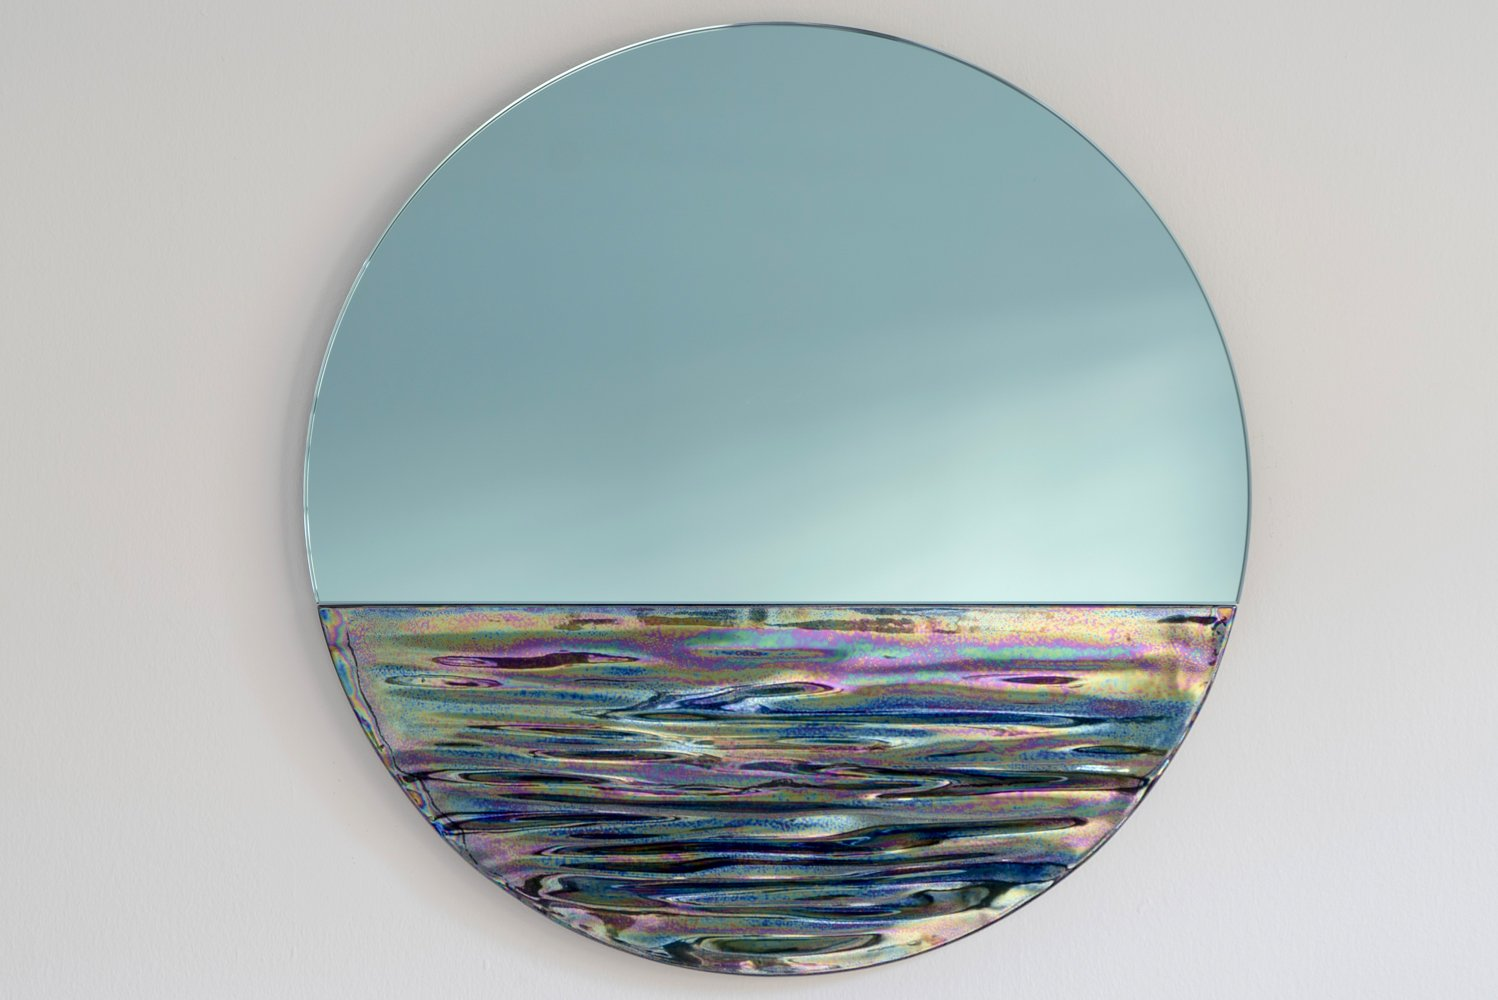 Part wall art, part functional decoration, the new mirrors were inspired by the horizon view of Lake Como in the north of Milan, Italy and Lake Michigan in Chicago.